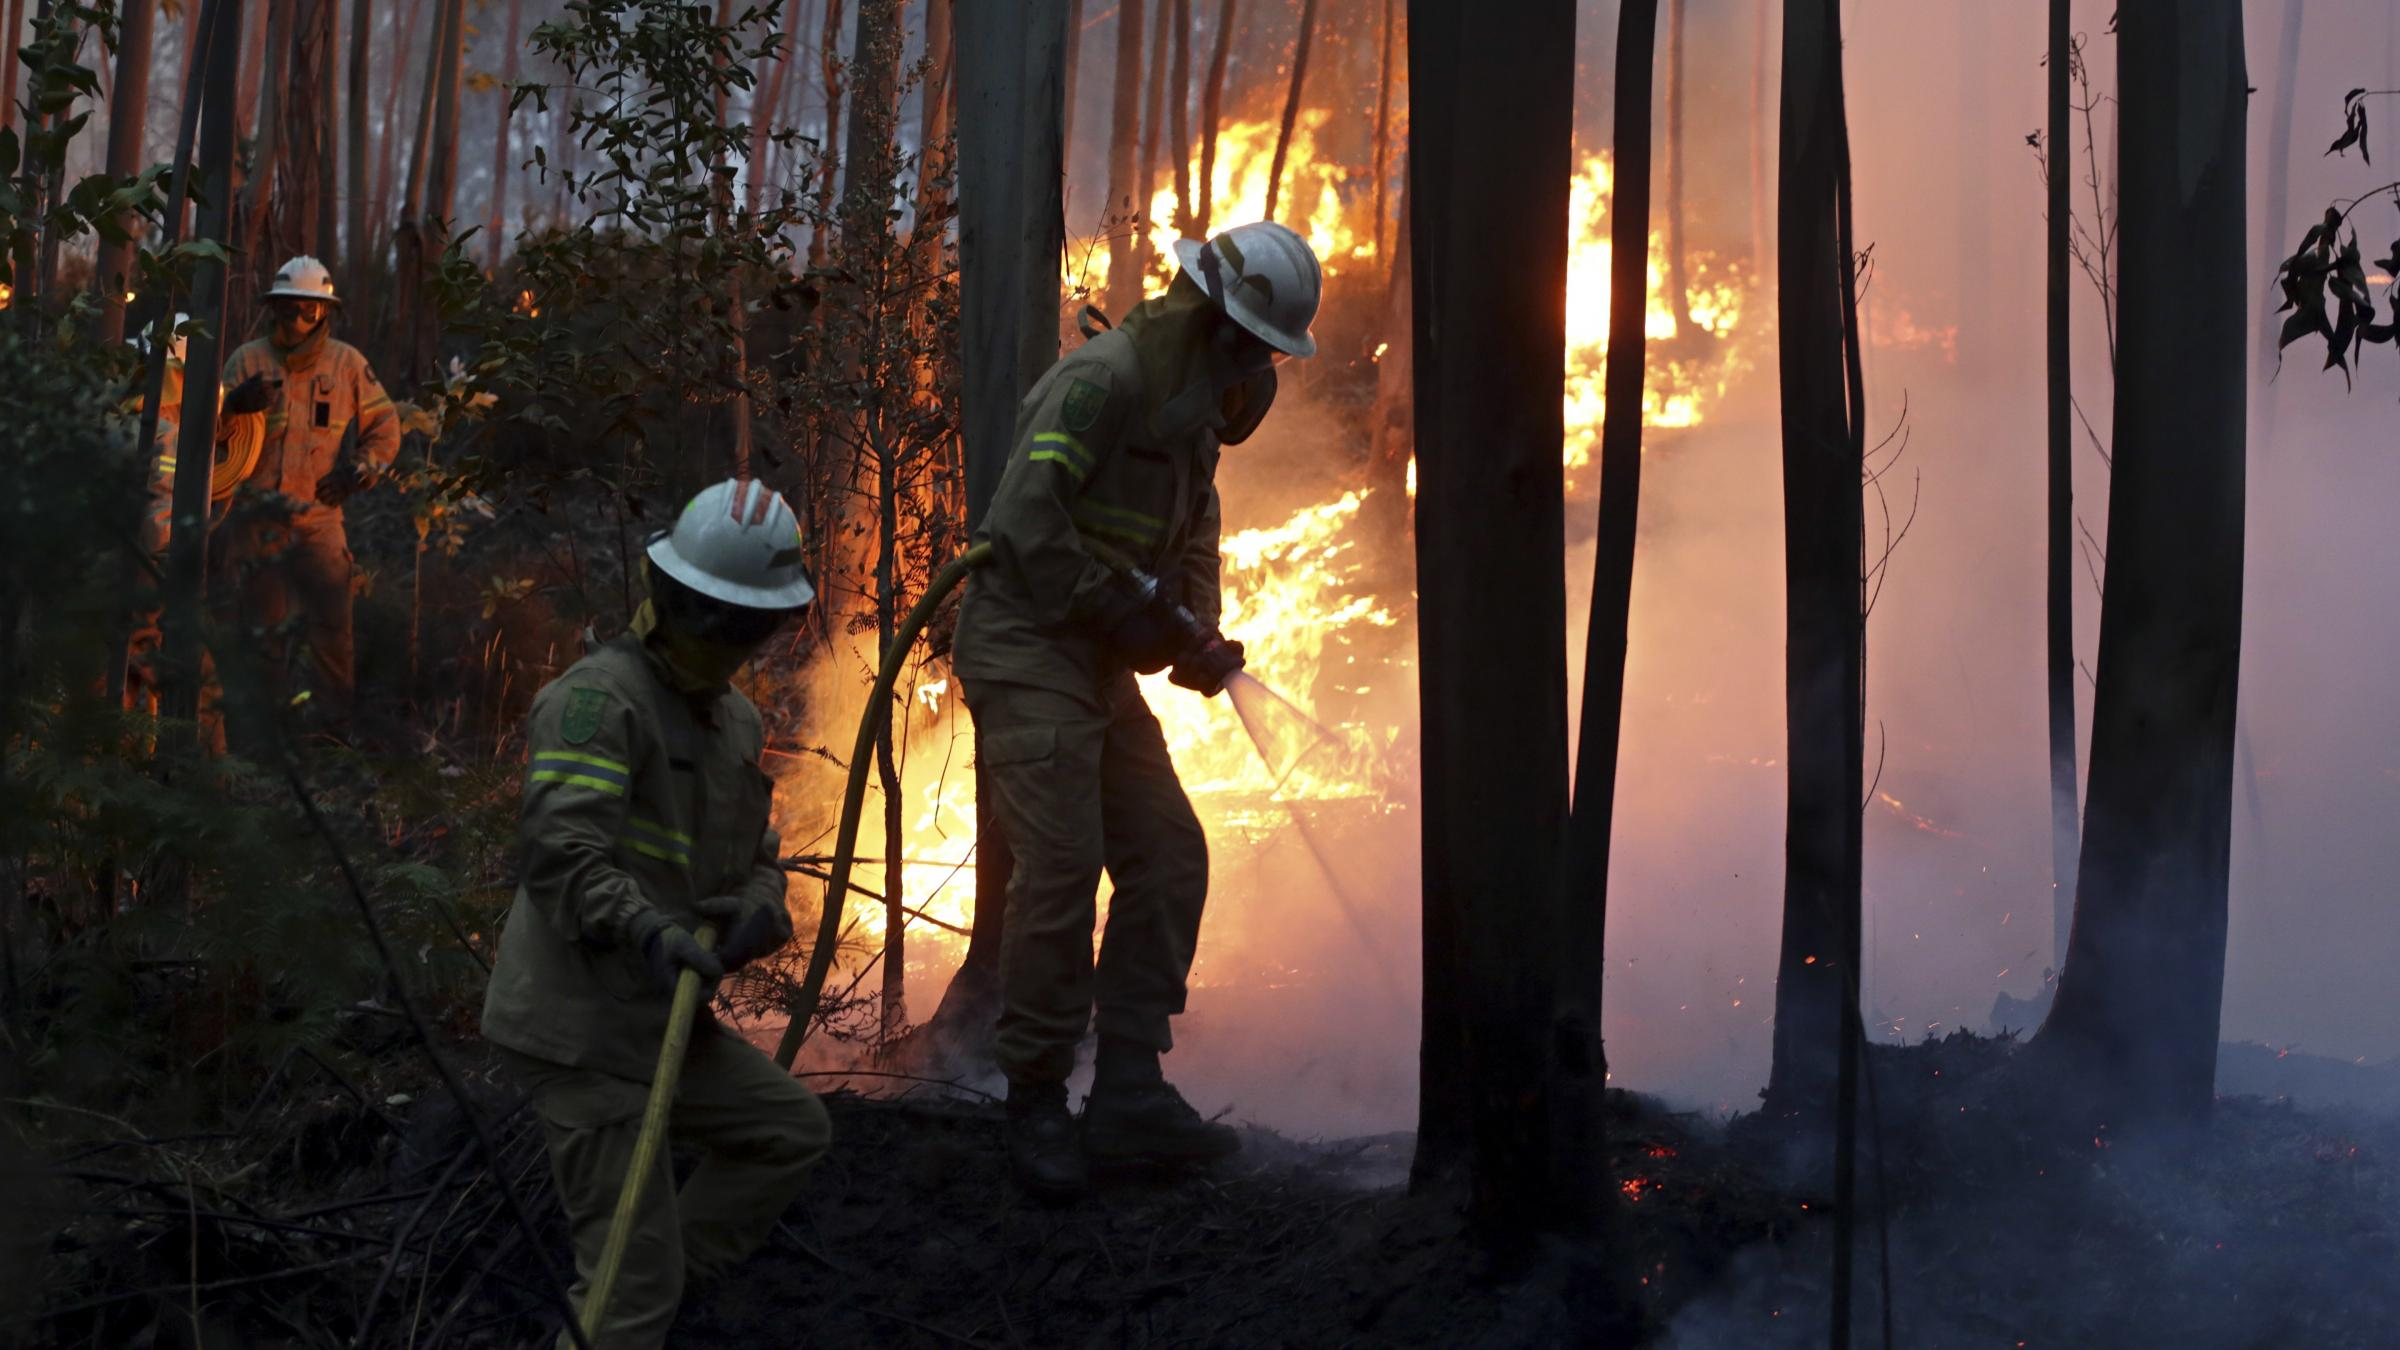 Forest fire kills 61 in Portugal; search on for more bodies